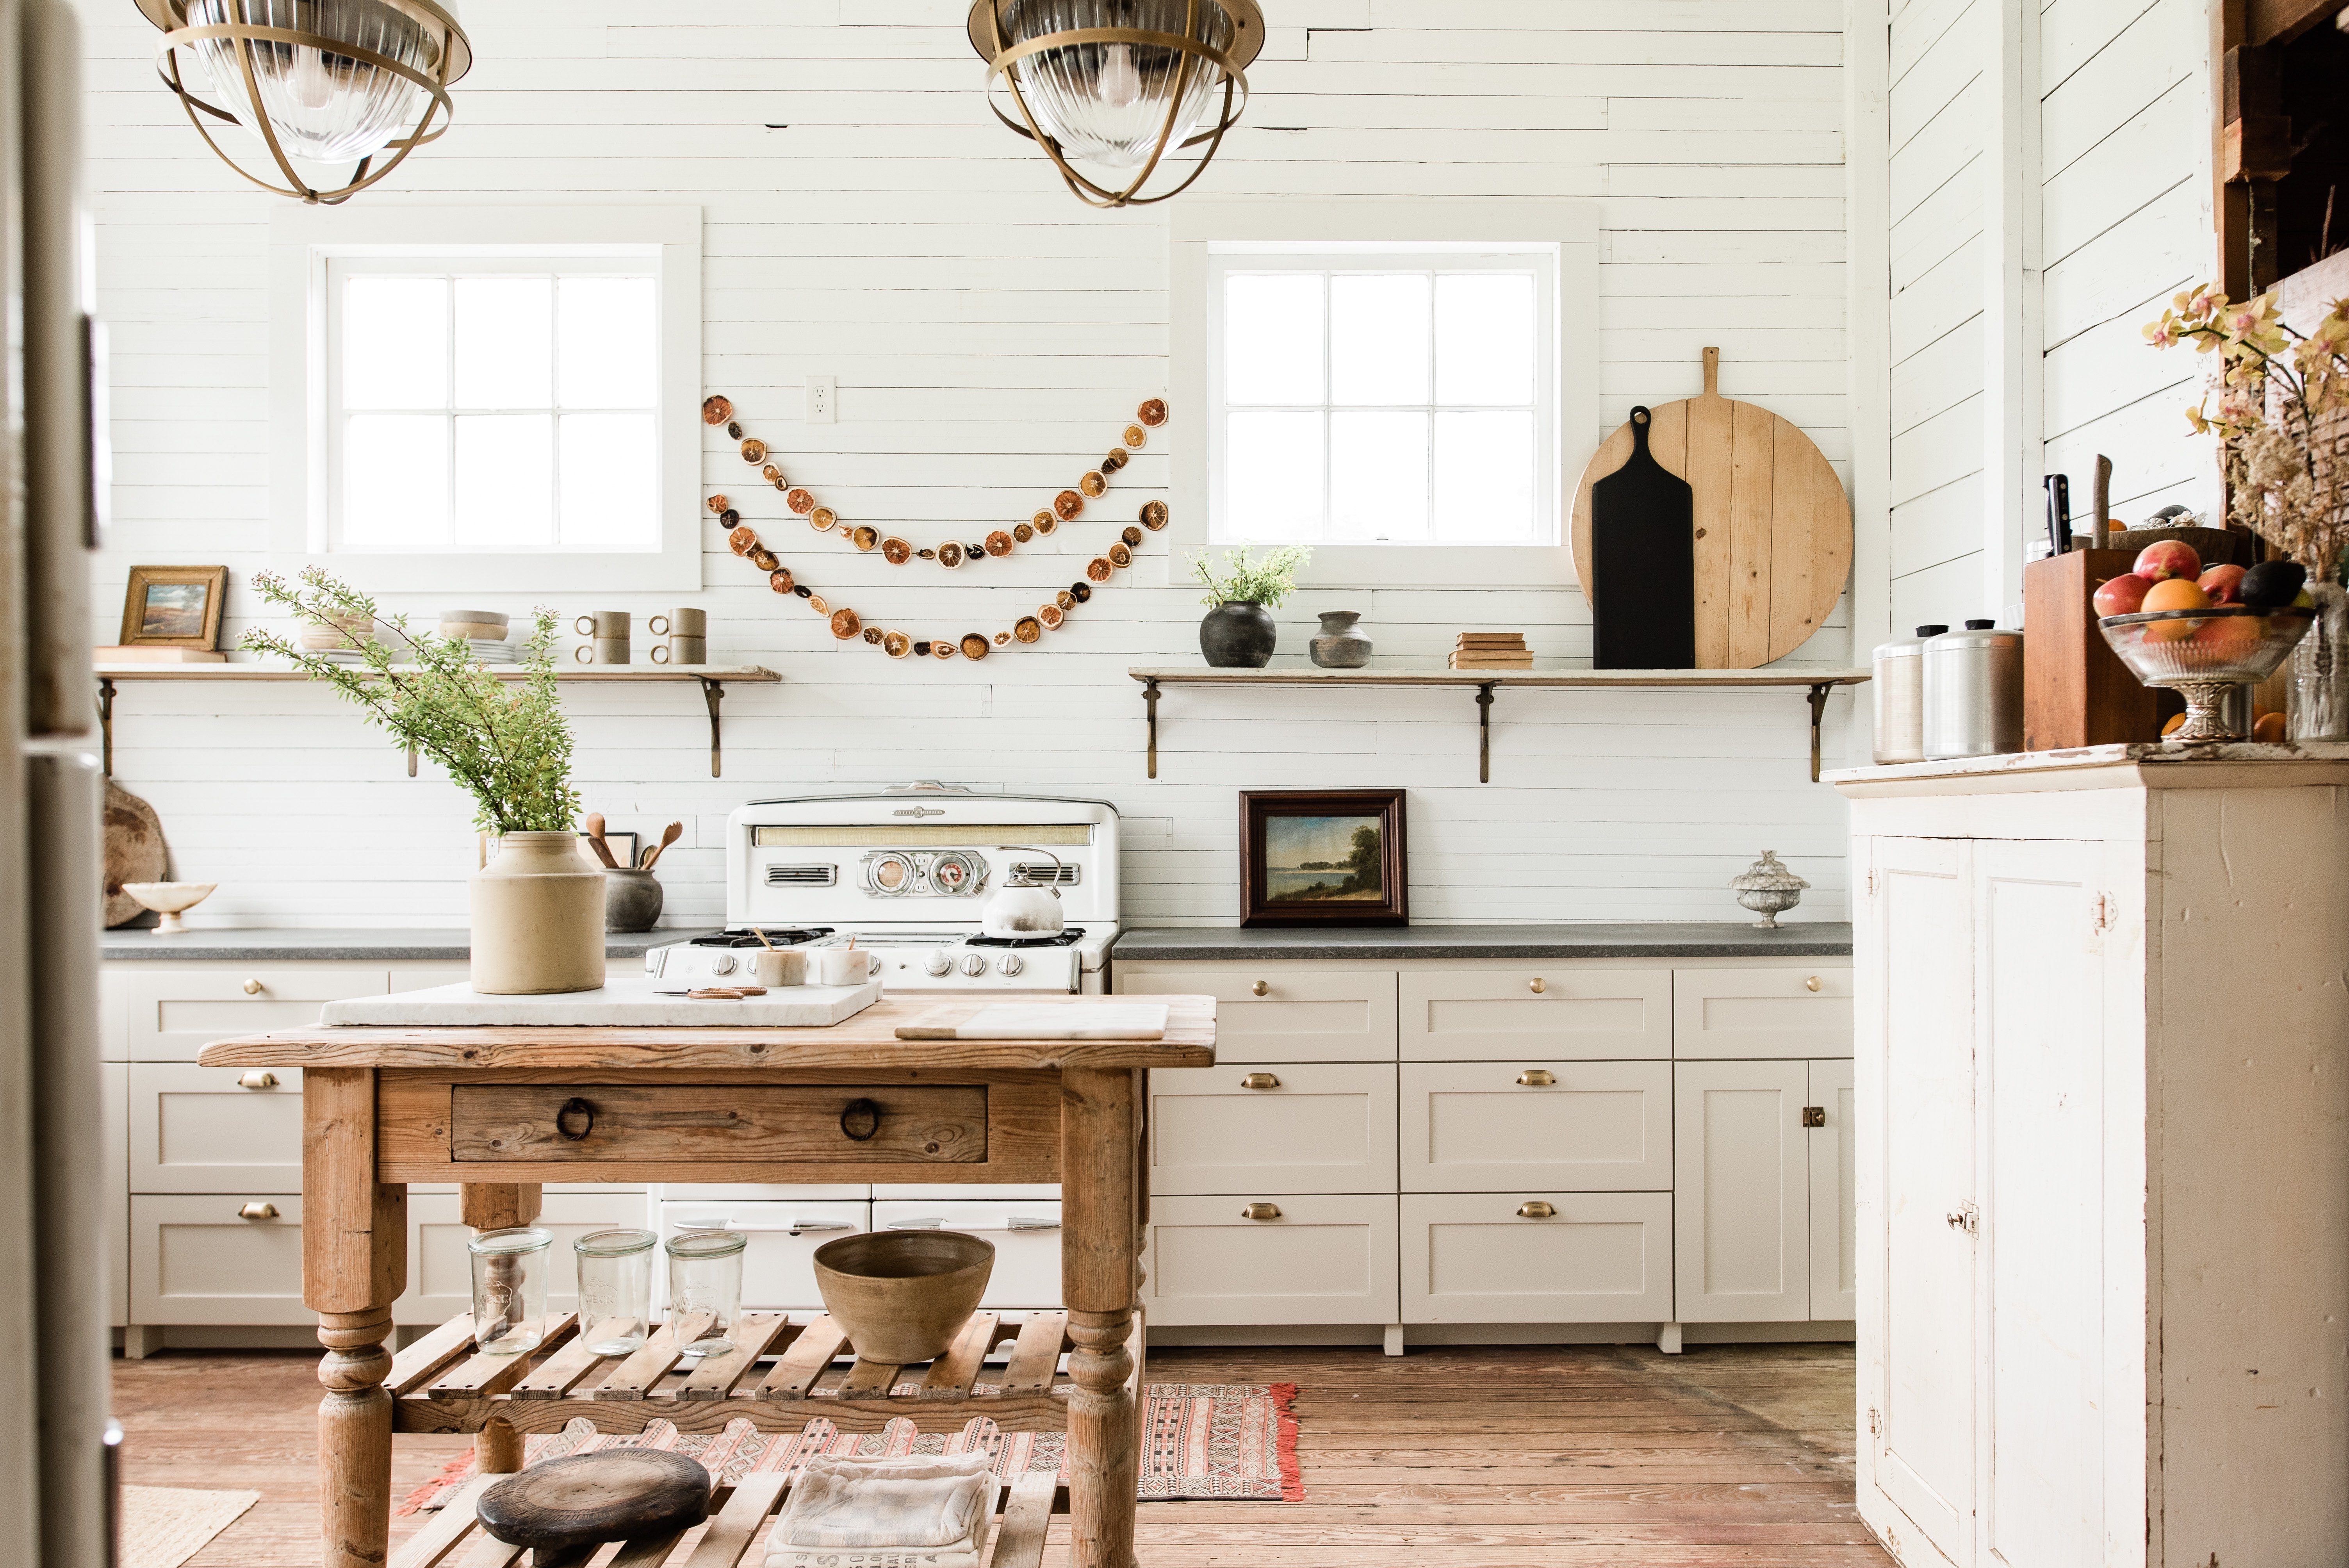 My Kitchen Remodel Reveal!